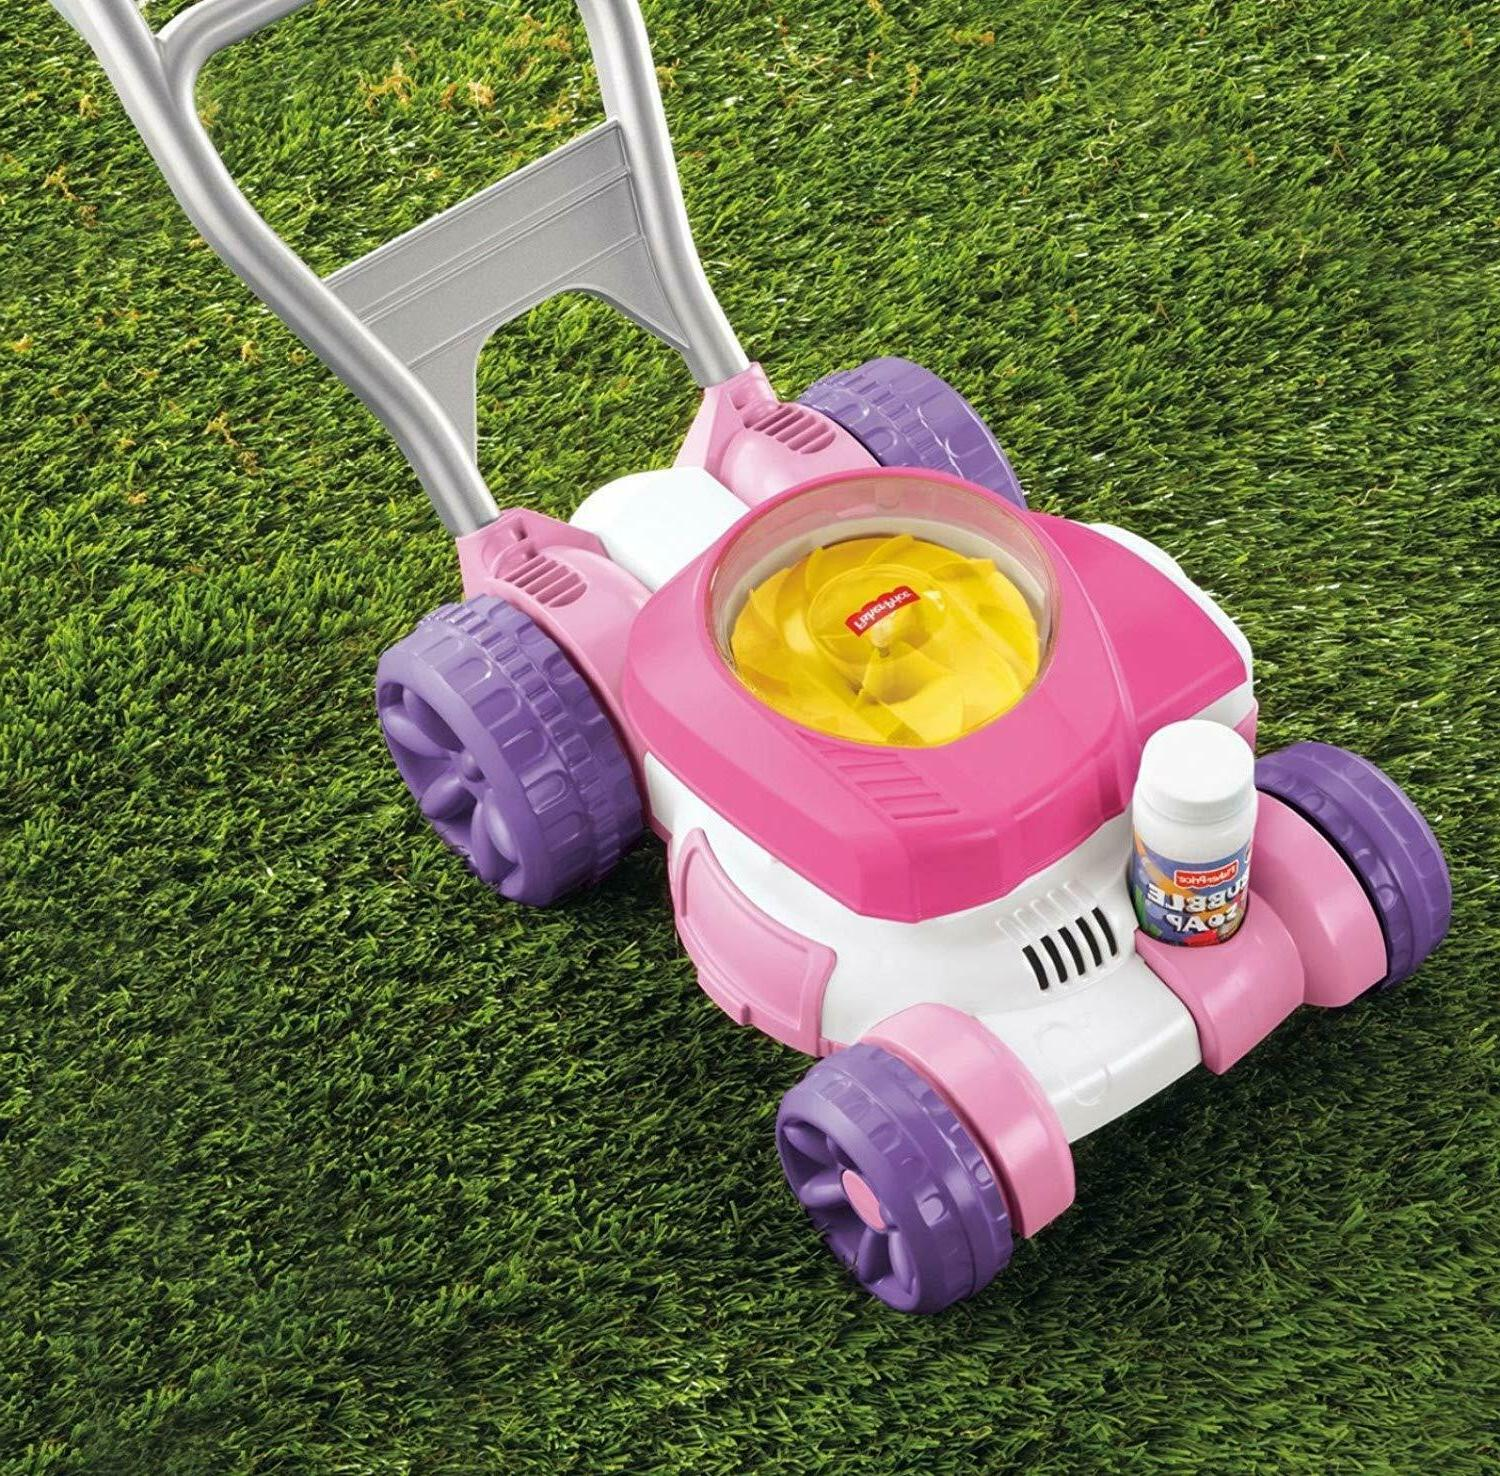 fisher price bubble push lawn mower outdoors